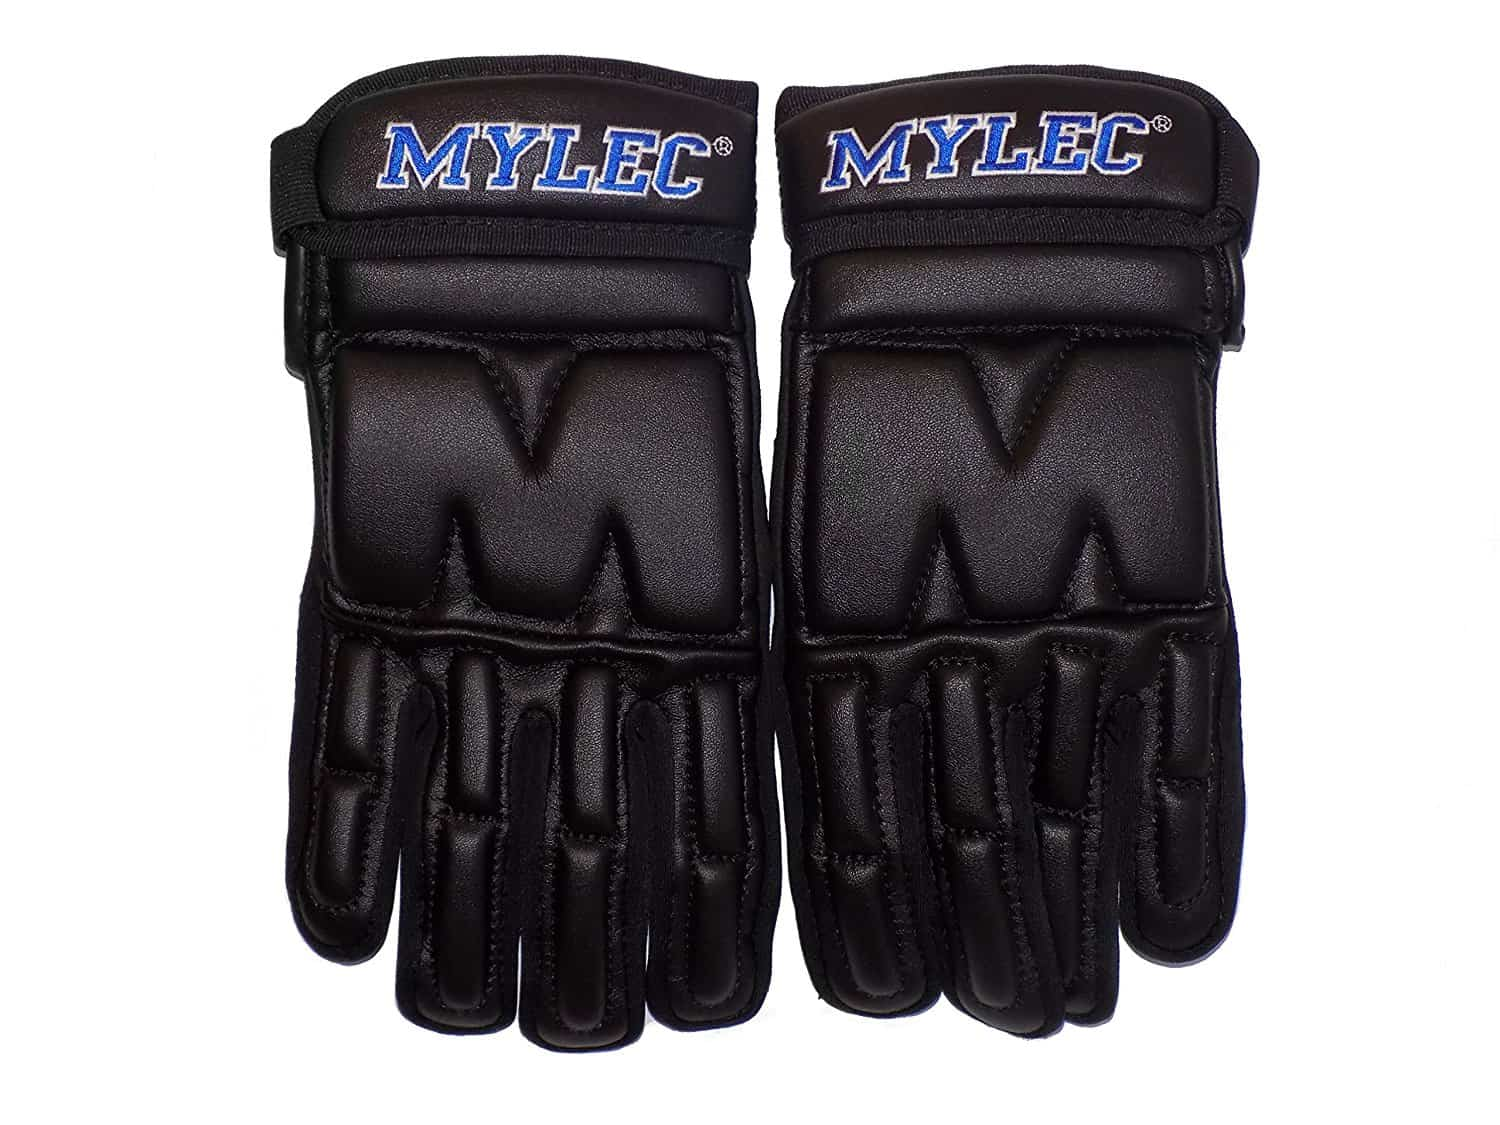 Mylec Elite Street/Dek Hockey Gloves